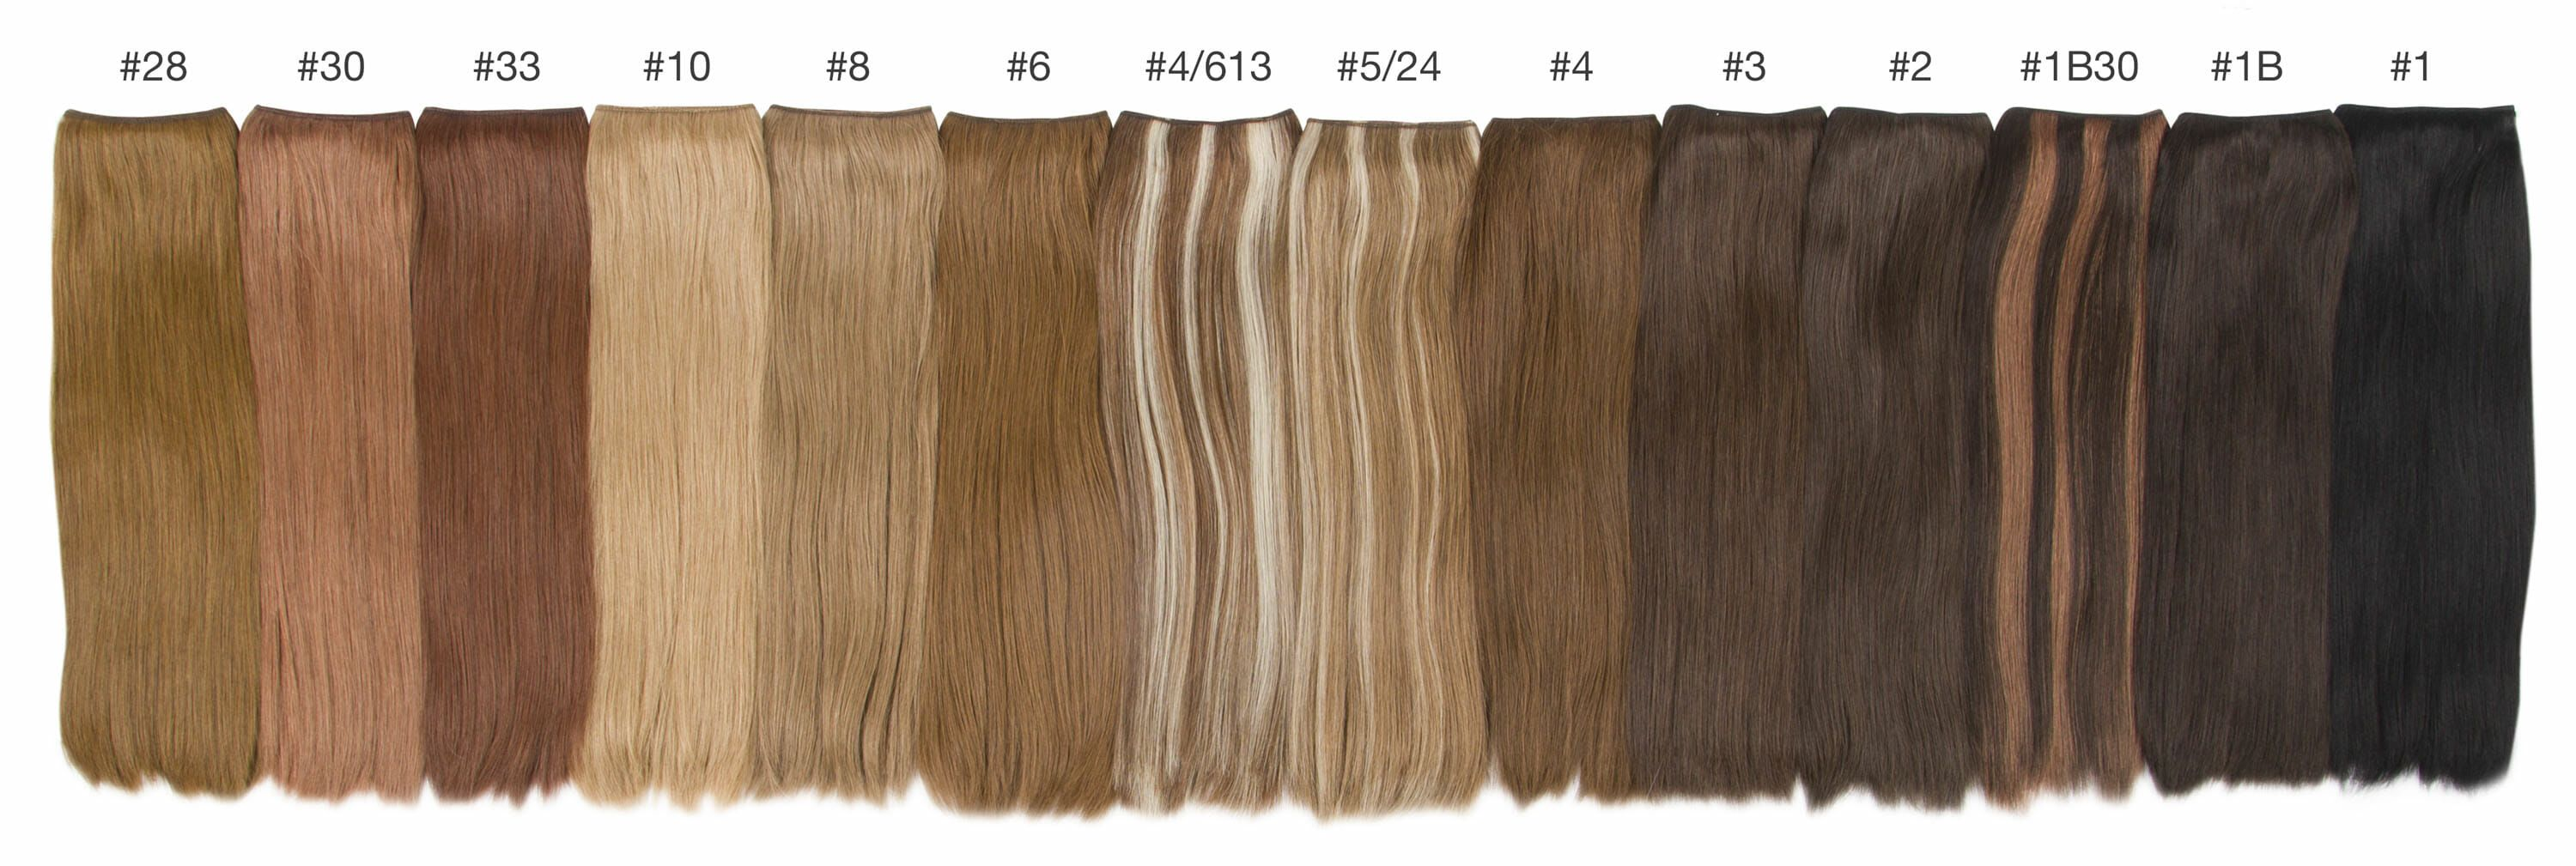 brunette color comparisons hidden crown hair